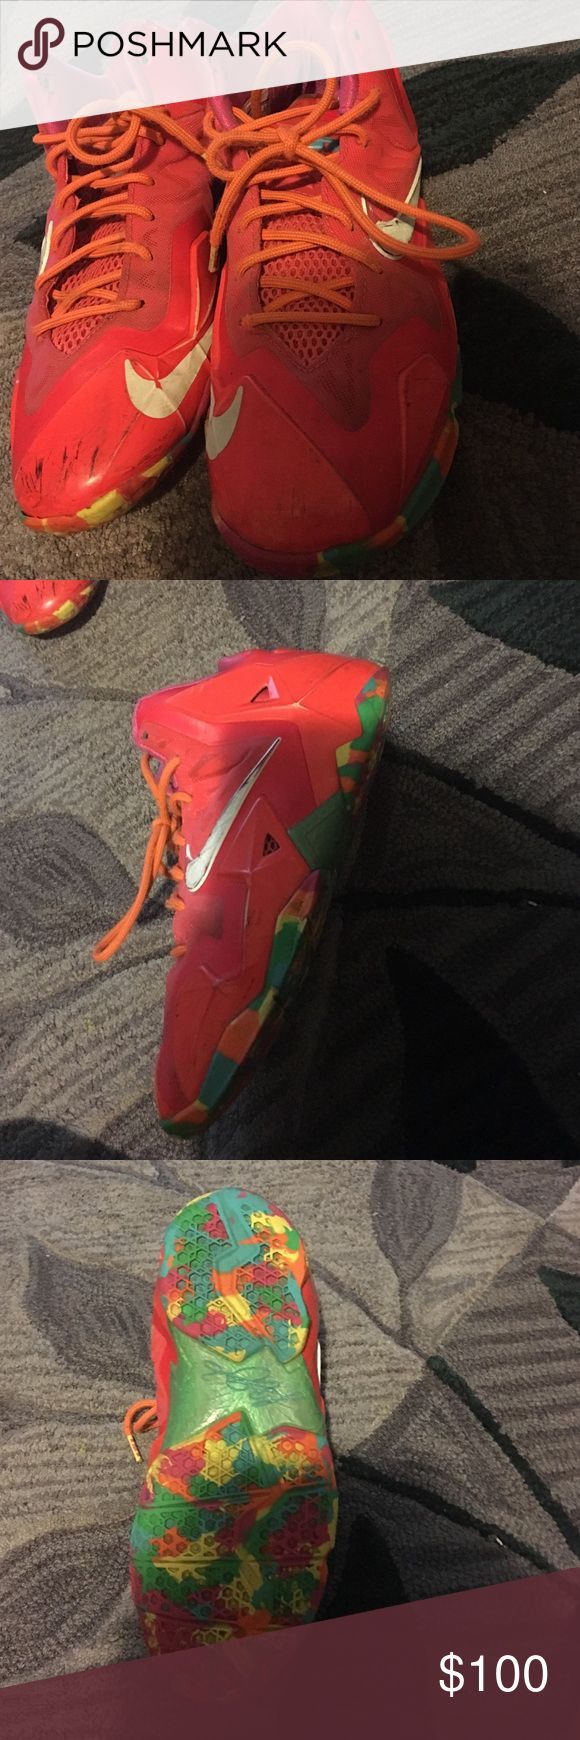 Lebron 11 fruity pebbles 100% authentic. Worn. Comes with out box. Dirty in picture but will clean before shipping Nike Shoes Sneakers